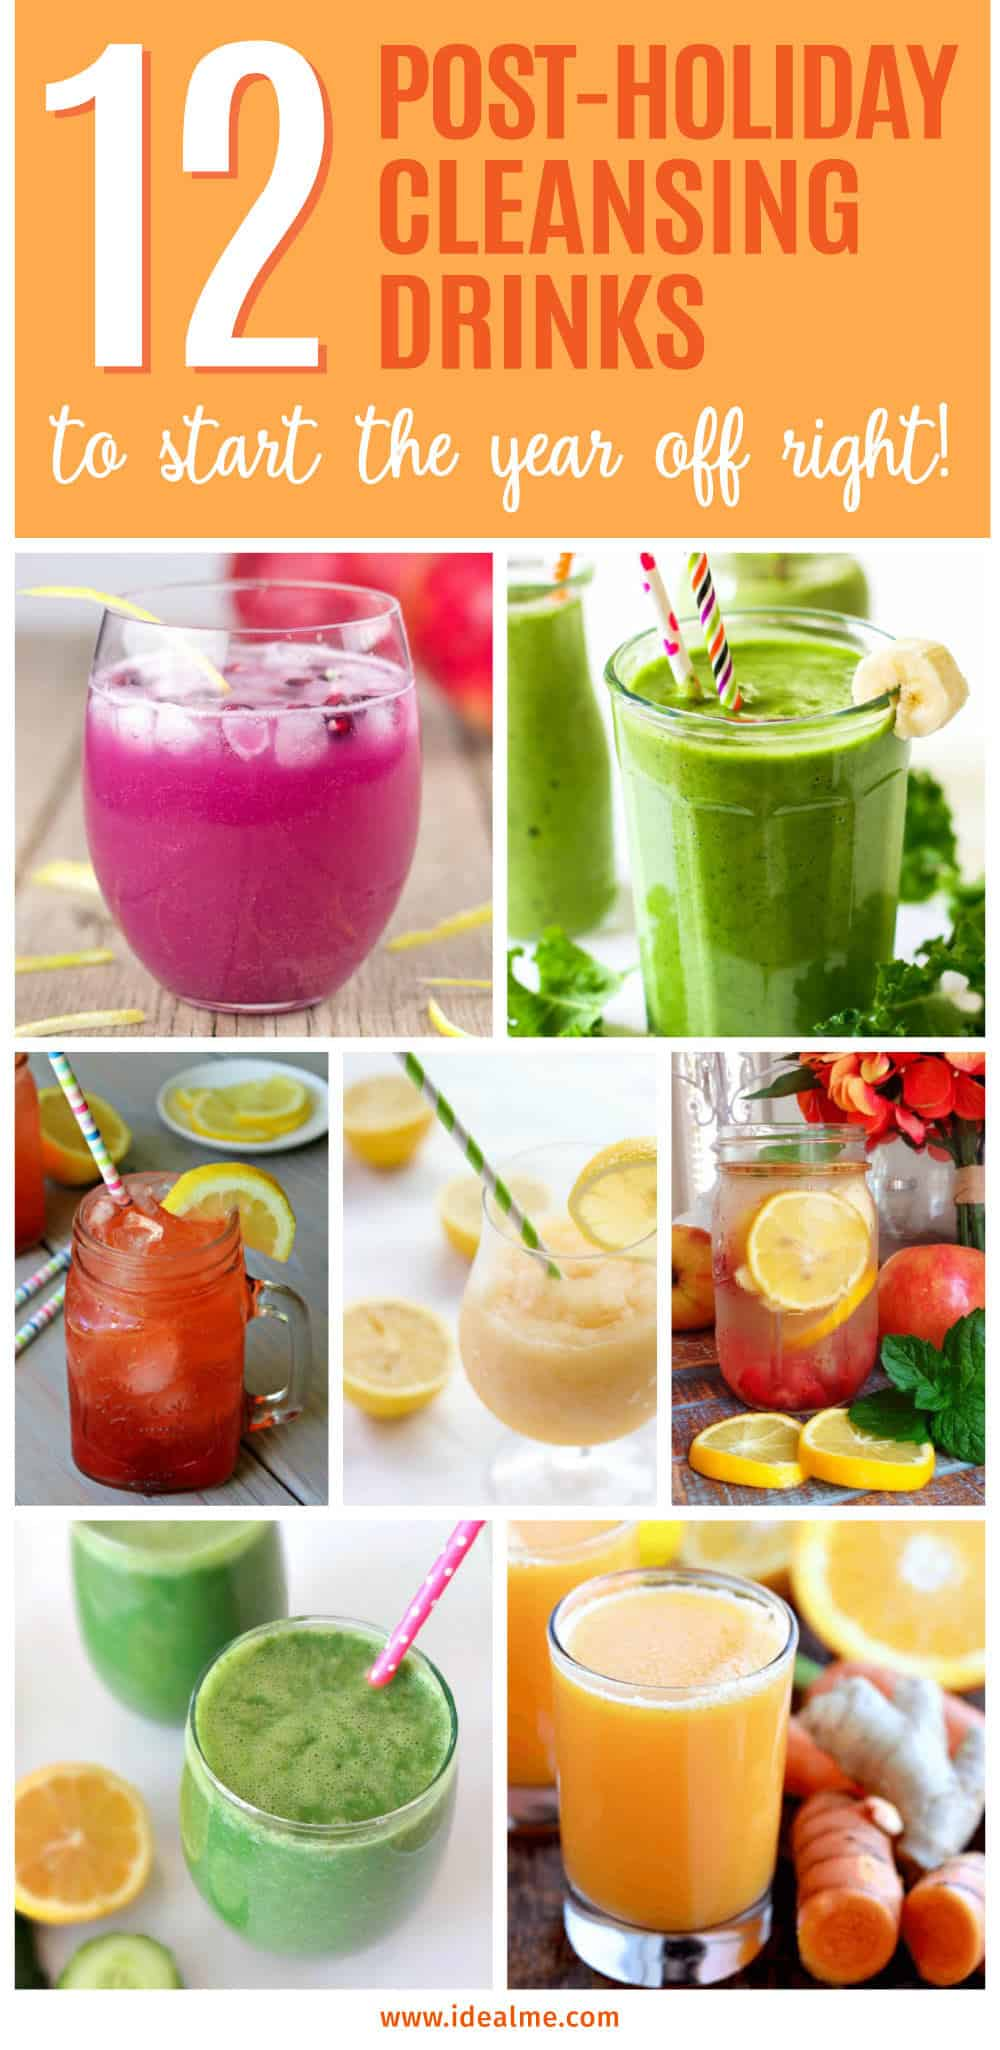 Detoxing with drinks is a great way to lose weight and give your system a break from unhealthy food. Here's our list of post-holiday cleansing drinks